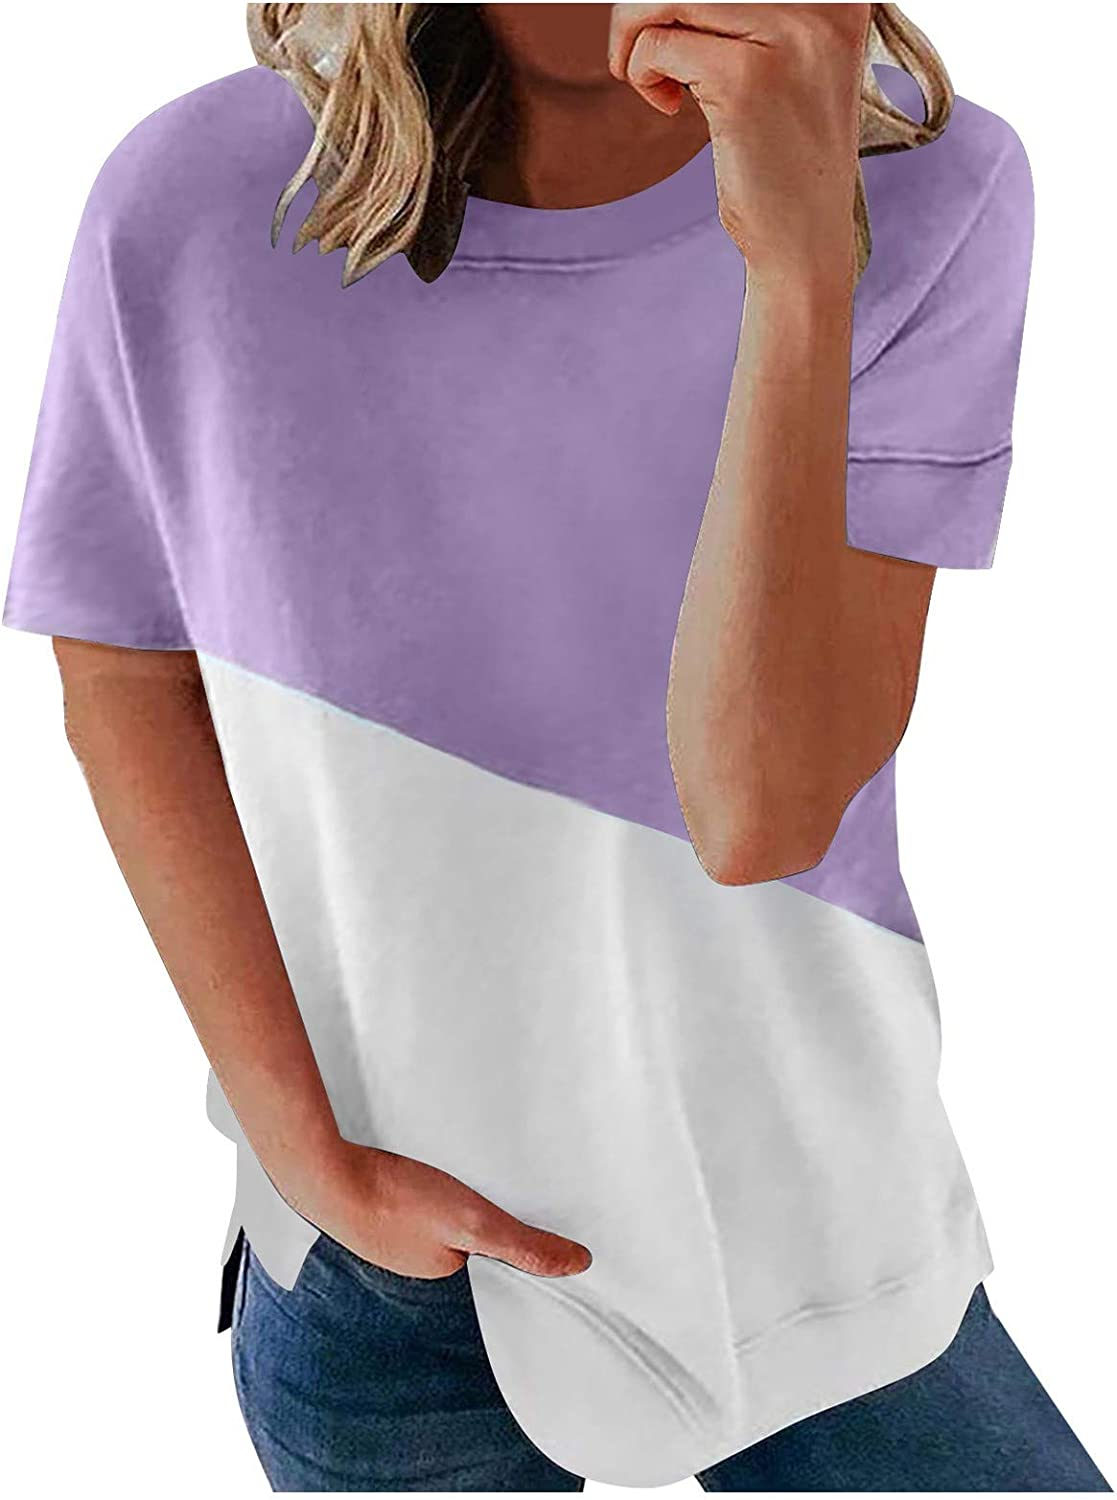 Womens Tops Clearance Under 10.00 Women's V-Neck Summer Casual Letters Printed Short Sleeves Graphic T-Shirt Purple